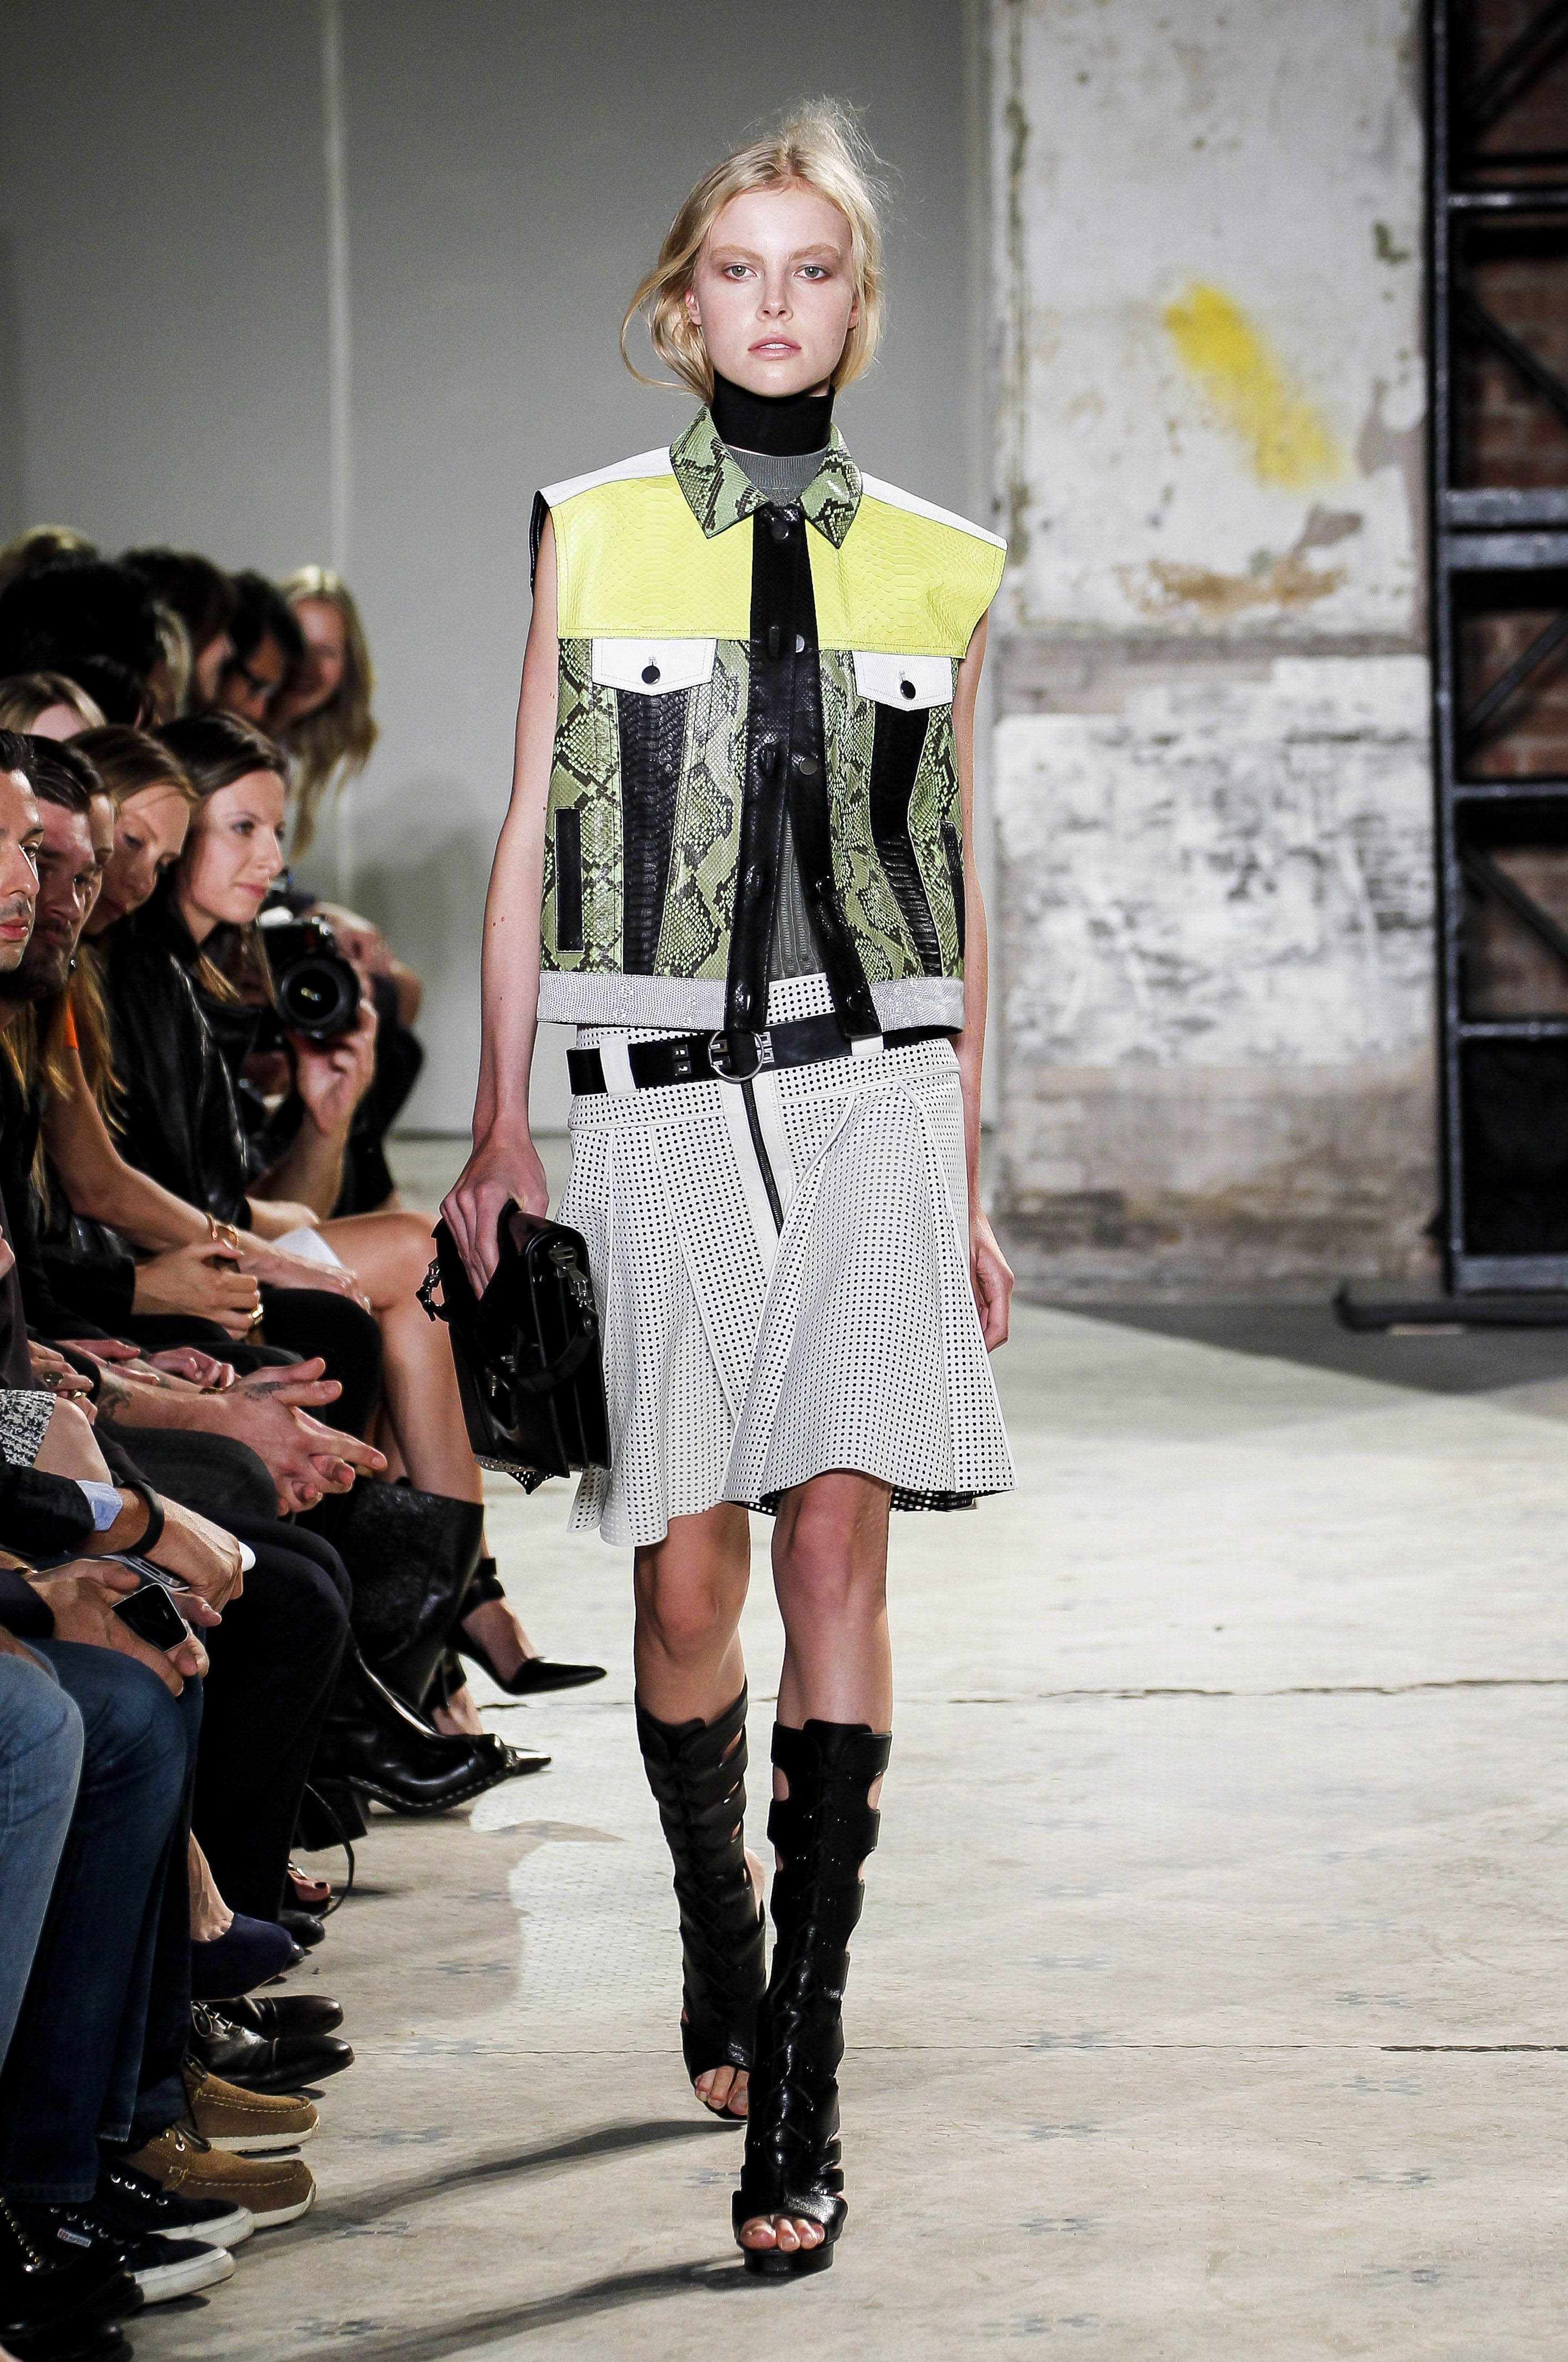 Proenza Schouler show, Spring Summer 2013, Mercedes-Benz Fashion Week, New York, America - 12 Sep 2012